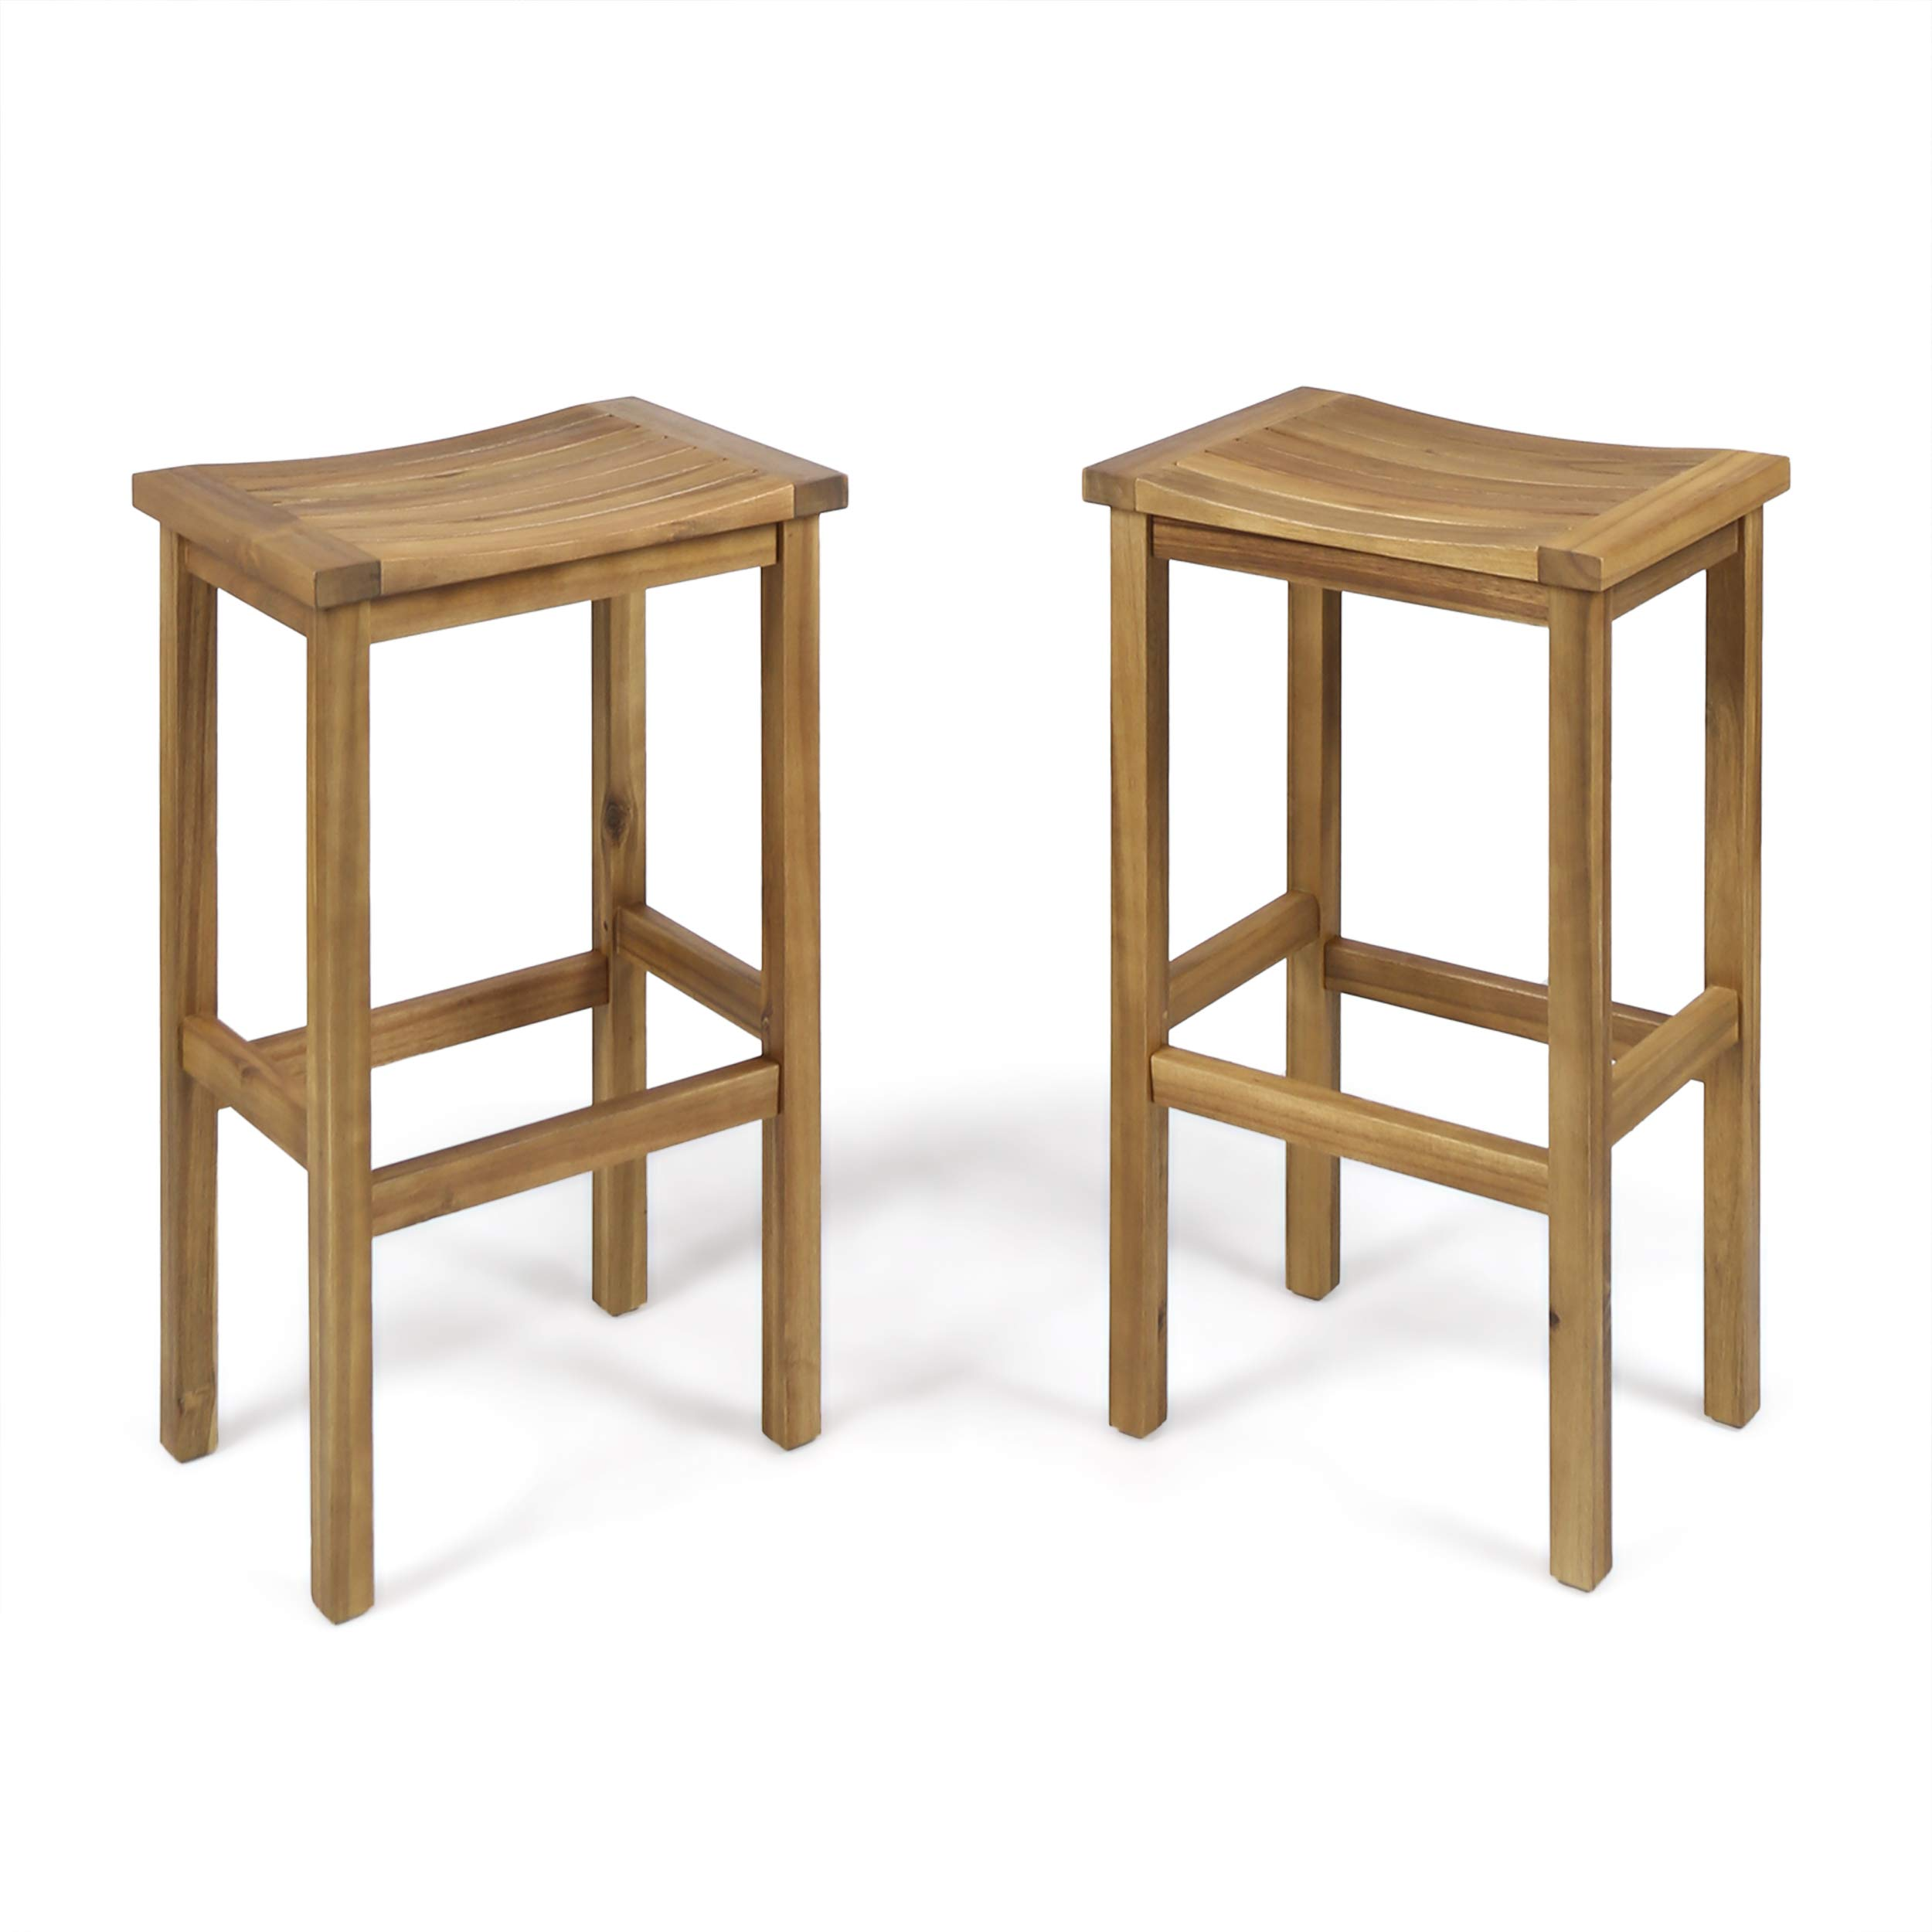 Christopher Knight Home 304142 Caribbean Outdoor 30'' Natural Finish Acacia Wood Barstools (Set of 2), Stained by Christopher Knight Home